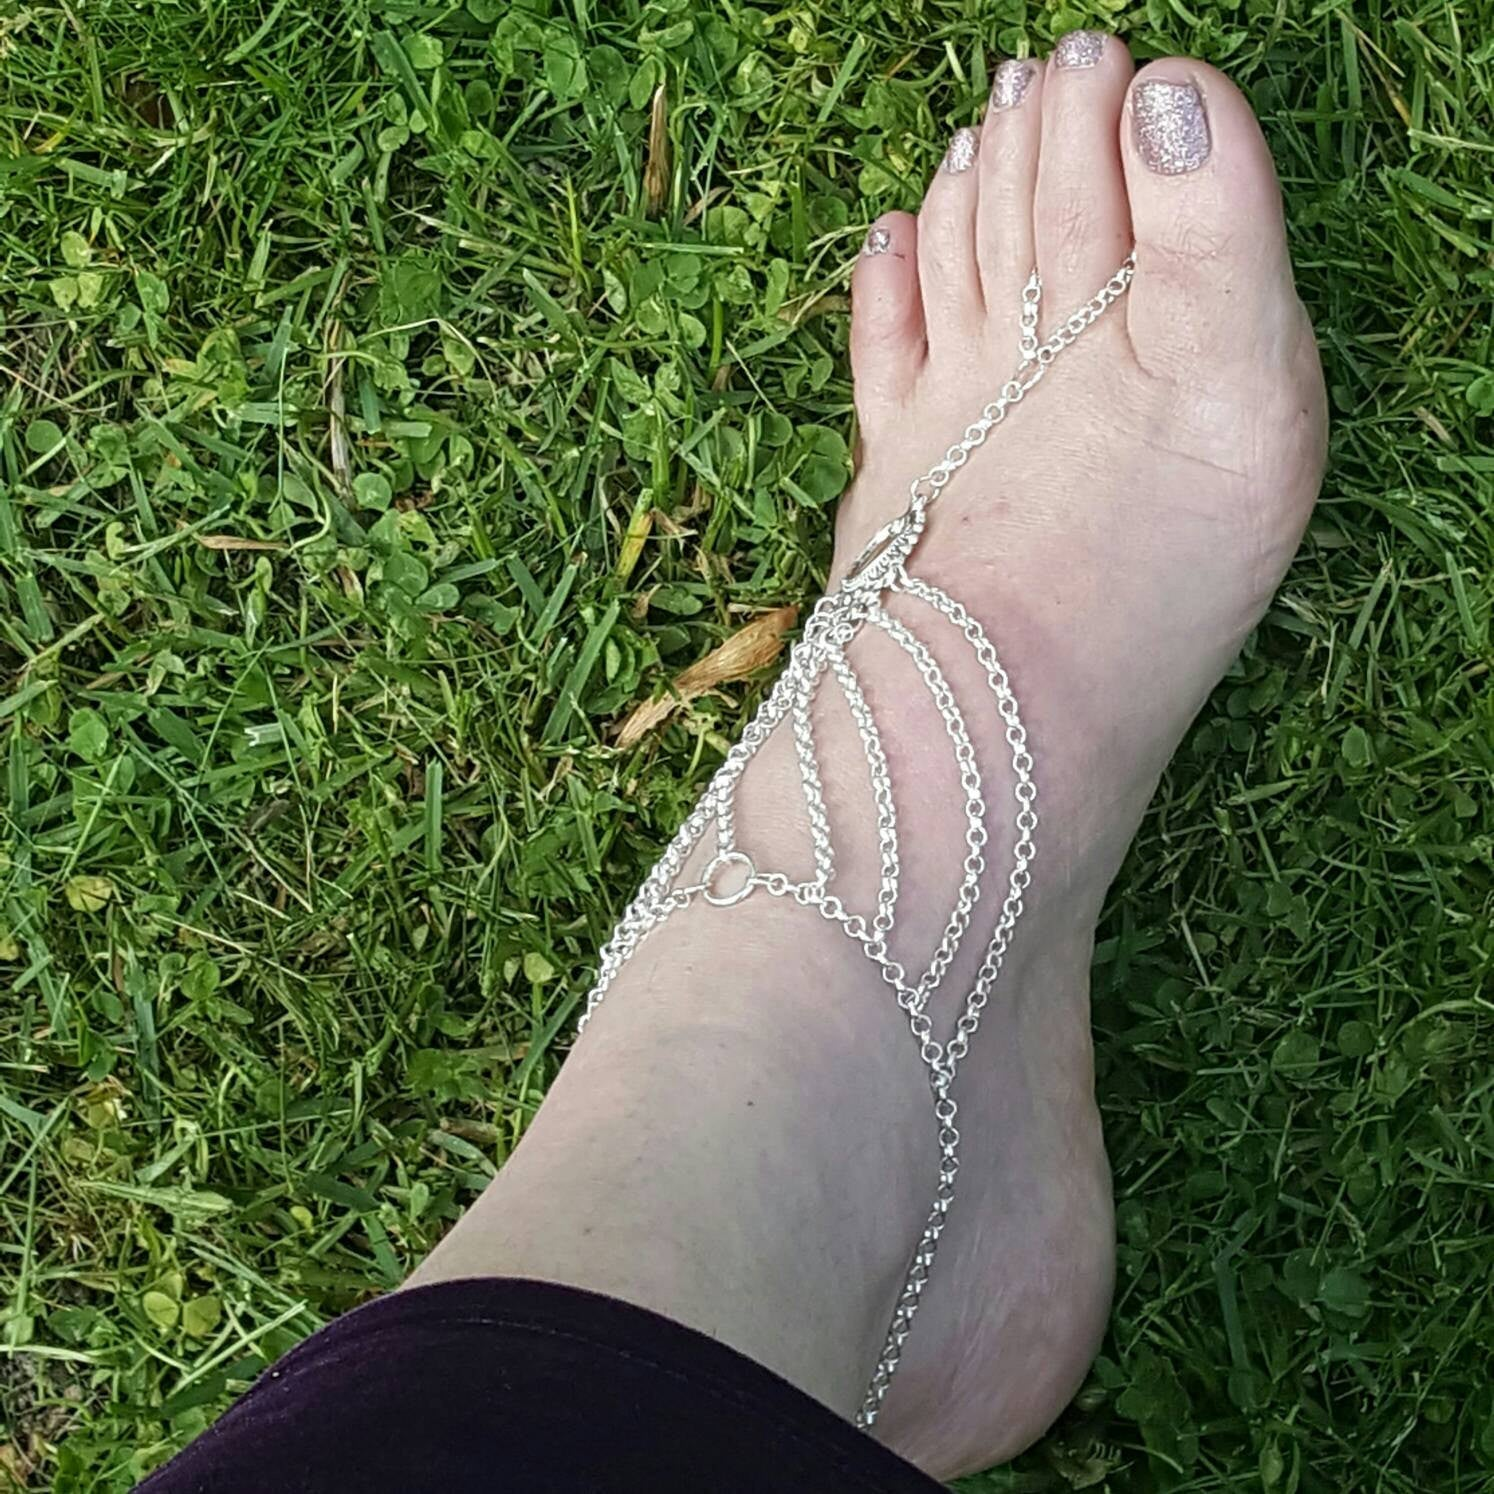 Barefoot Sandals Foot Slave Jewelry Slave Anklet Bohemian Jewelry - DRAVYNMOOR